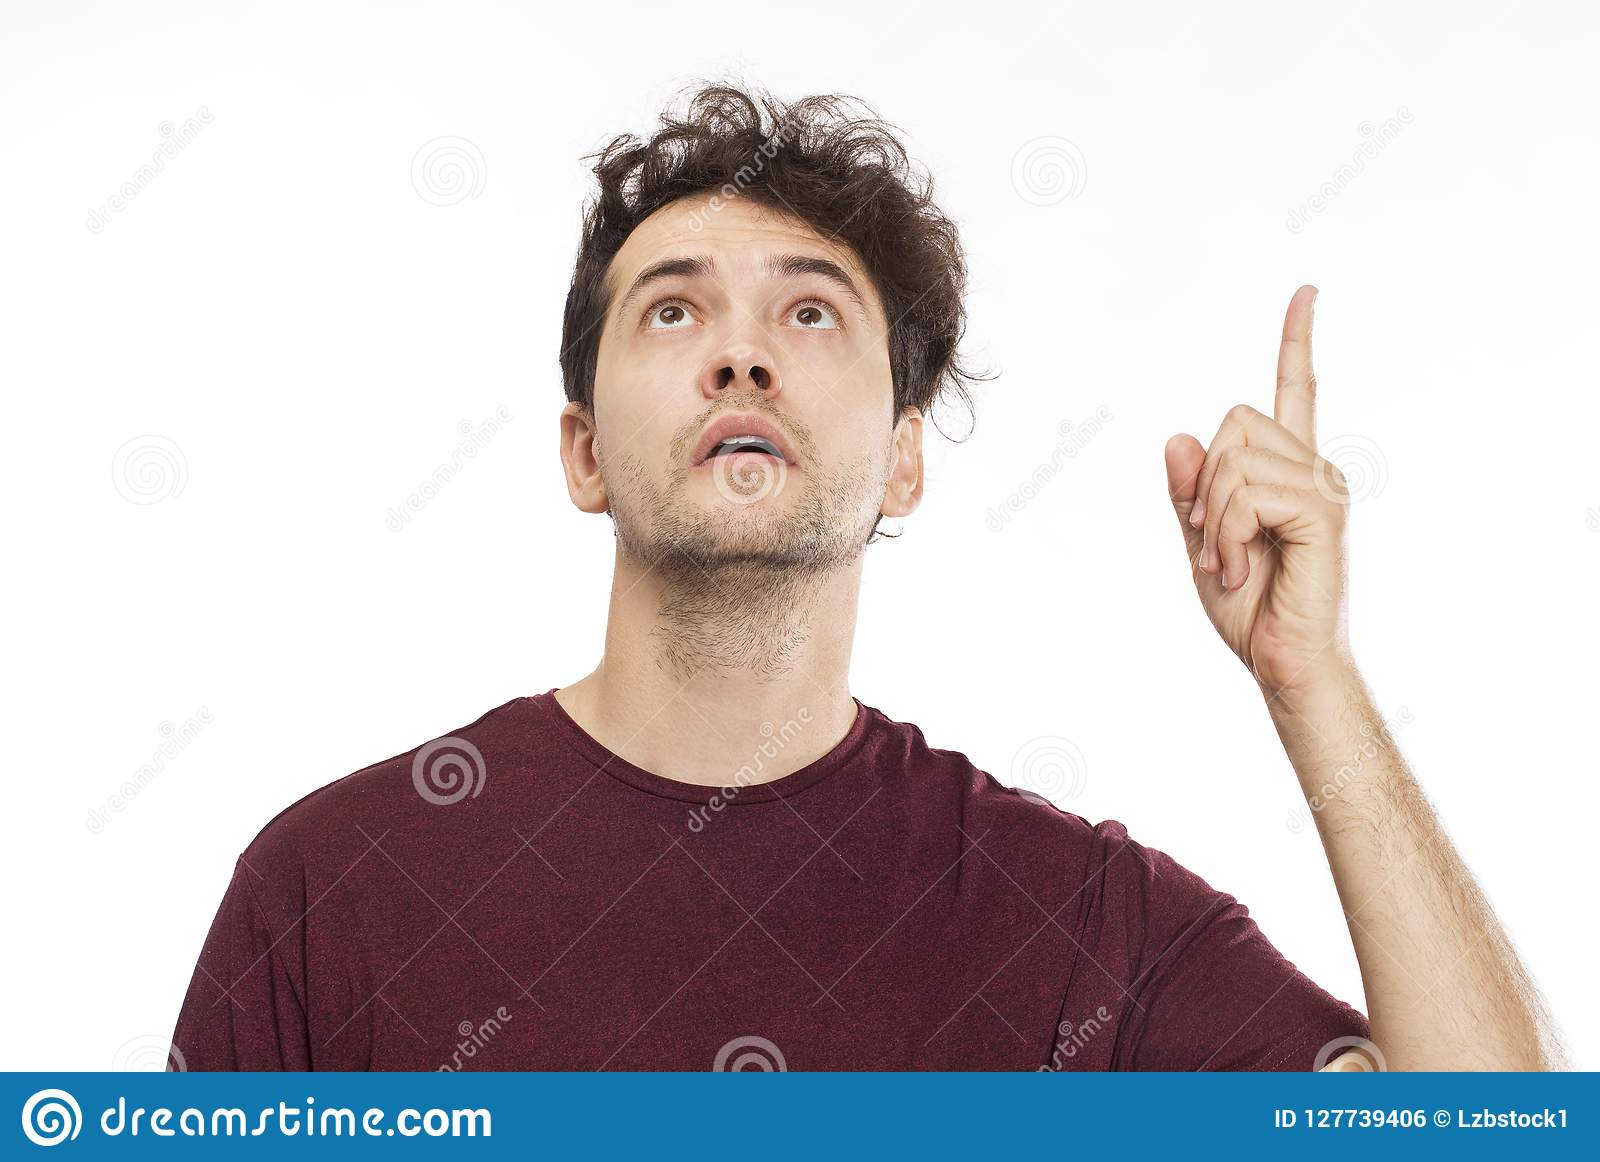 Portrait Of A Handsome Man Looking Up And Showing Something Isolated On White Stock Photo Image Of Open Copy 127739406 Frank got up and went from window to window cautiously. https www dreamstime com portrait handsome man looking up showing something isolated white cheerful young wall image127739406